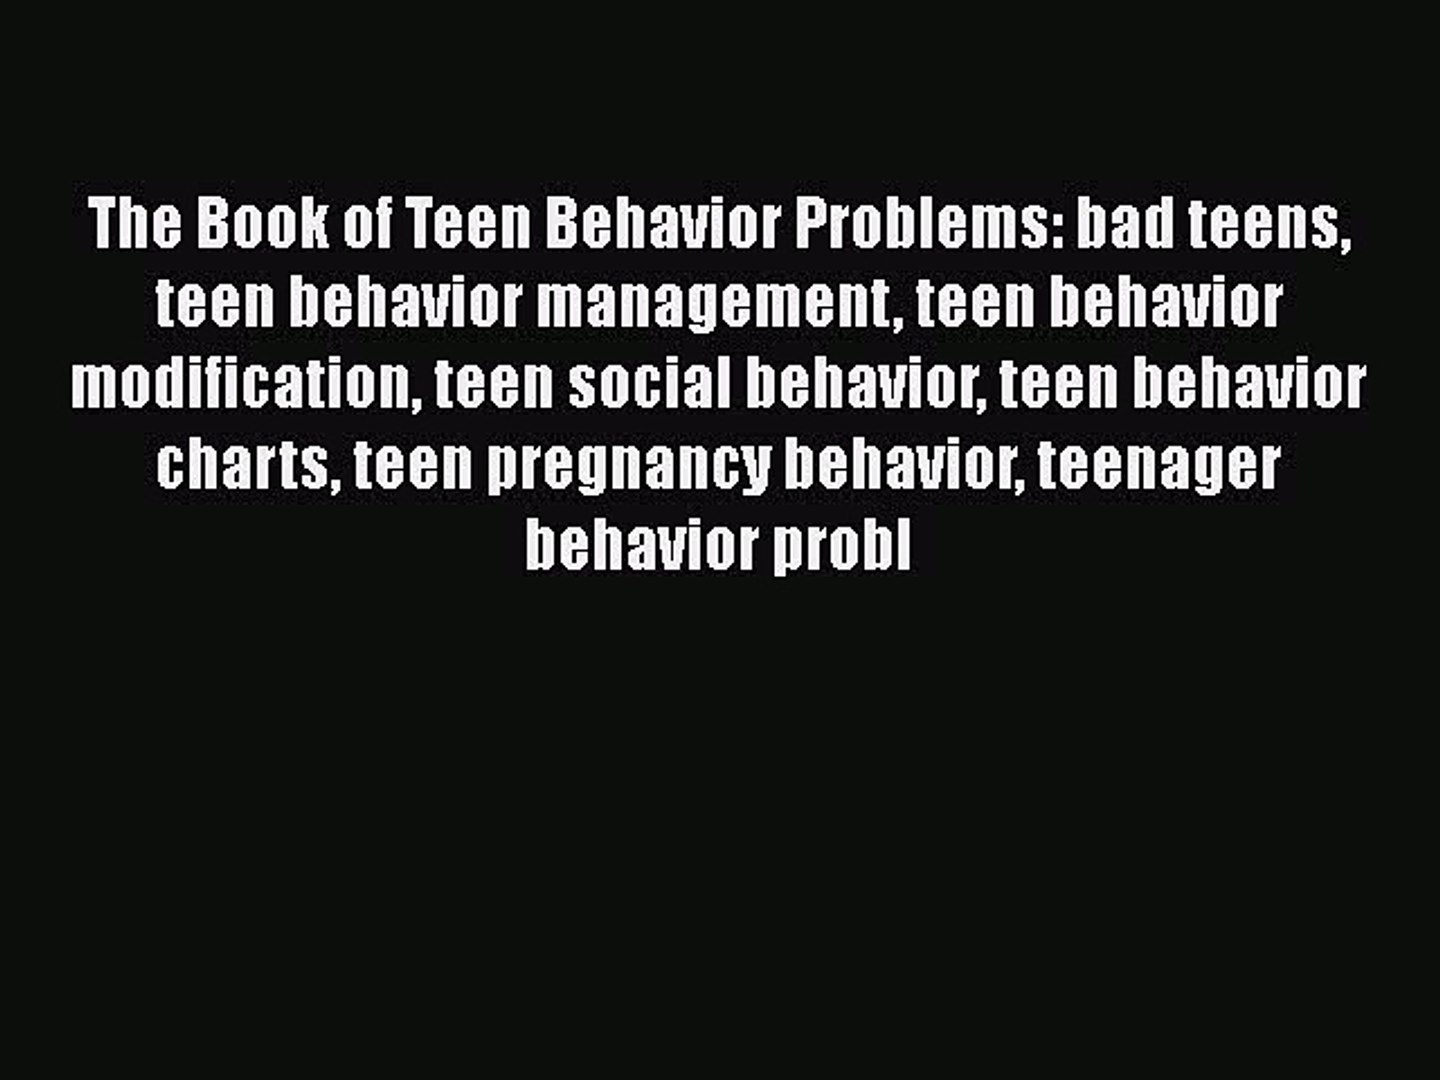 Read The Book of Teen Behavior Problems: bad teens teen behavior management teen behavior modificati